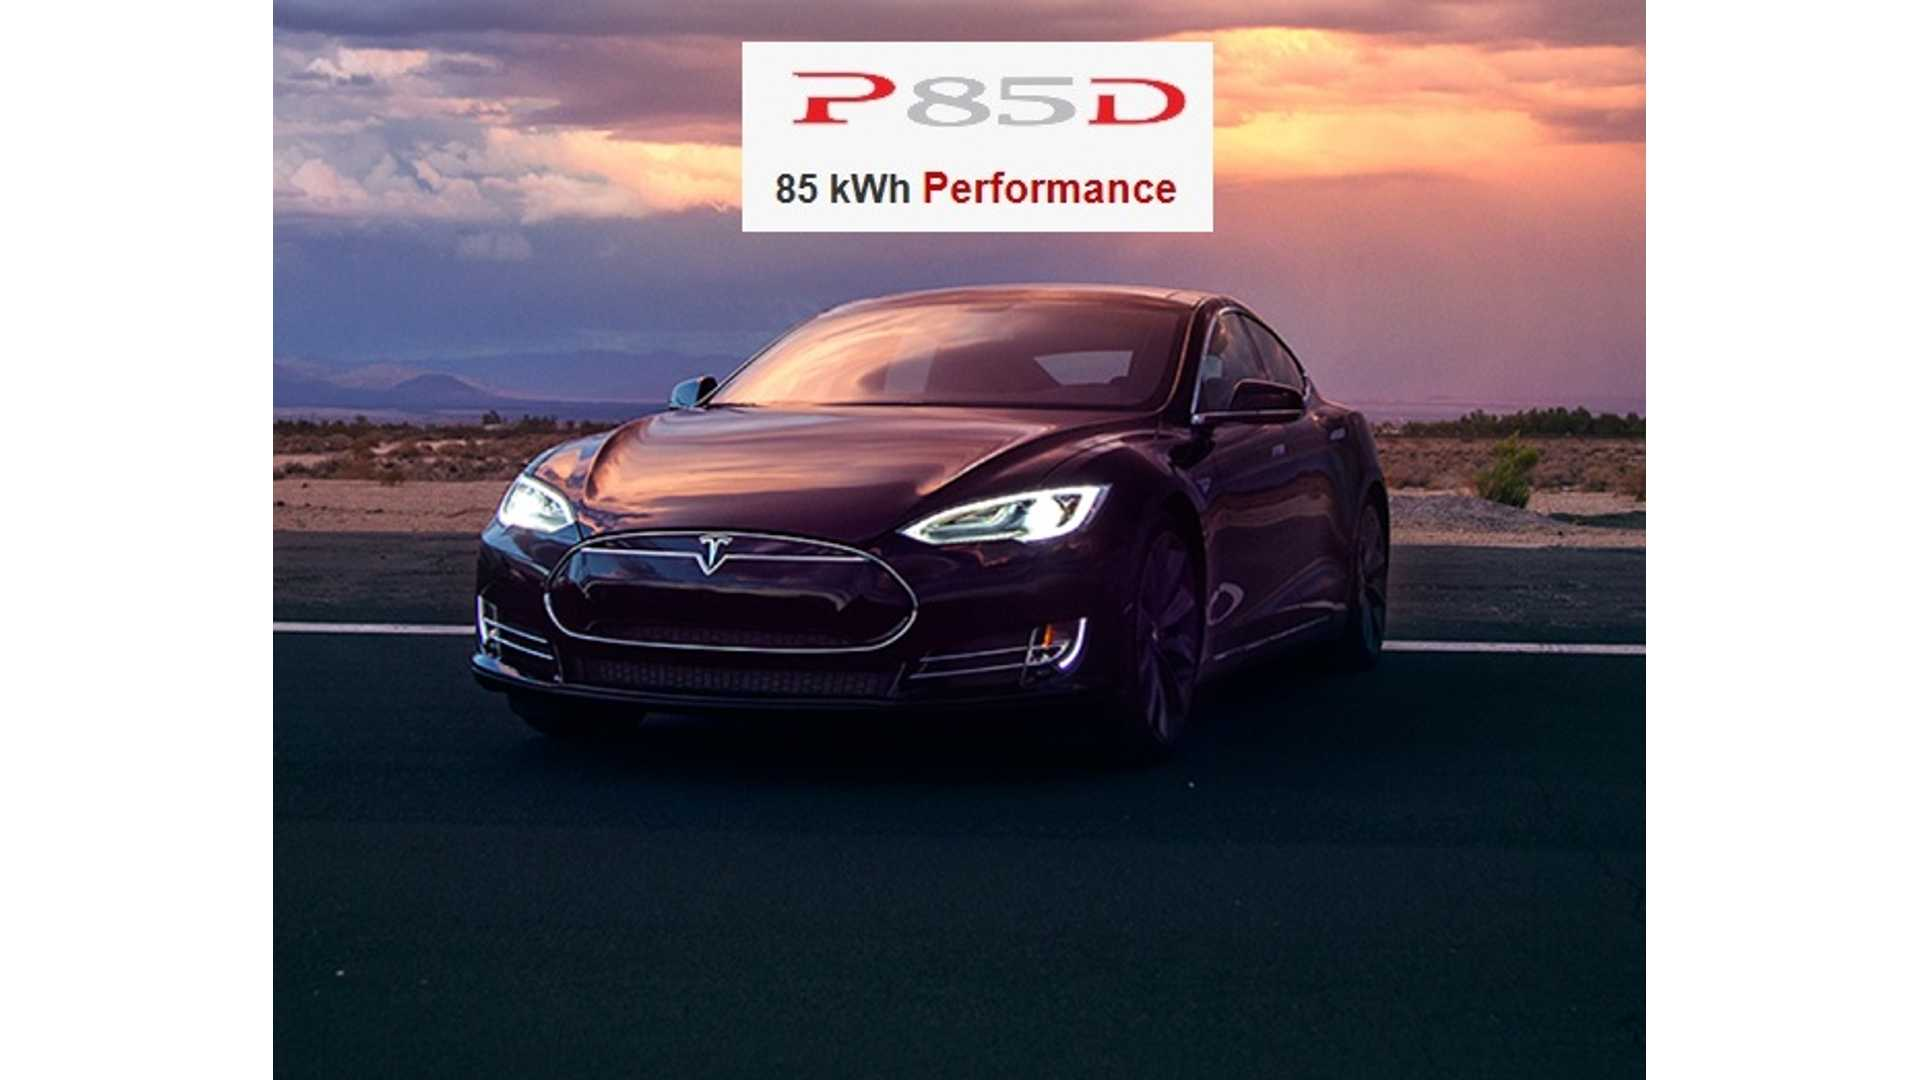 Base Tesla Model S P85d Gets Price Slashed By 14 500 Range Now Listed At 285 Miles